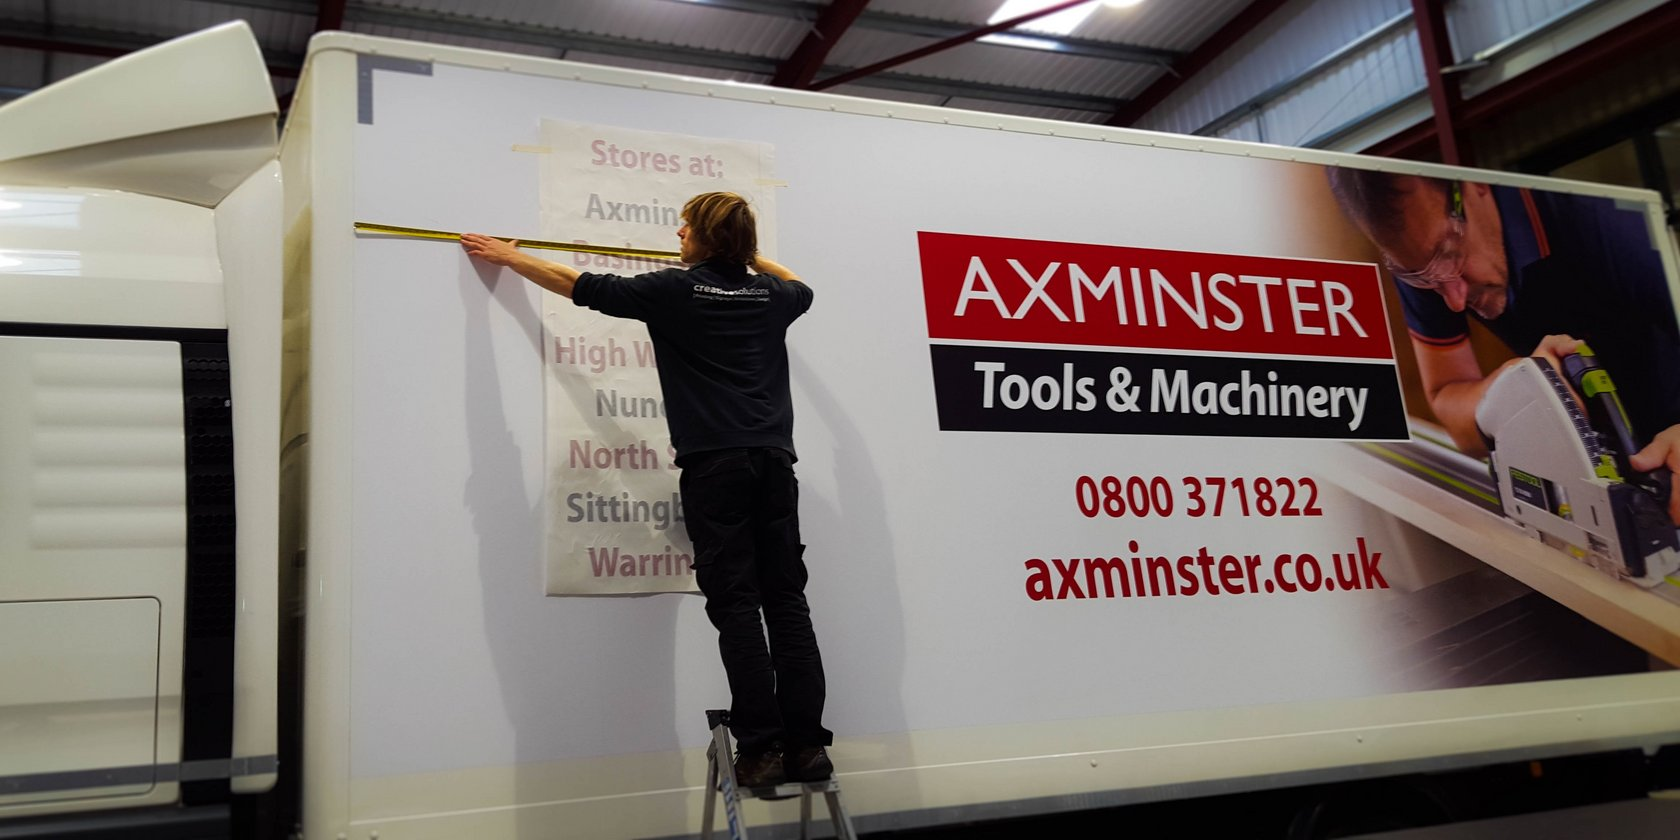 Lorry Graphics being applied by Creative Solutions for Axminster Tools